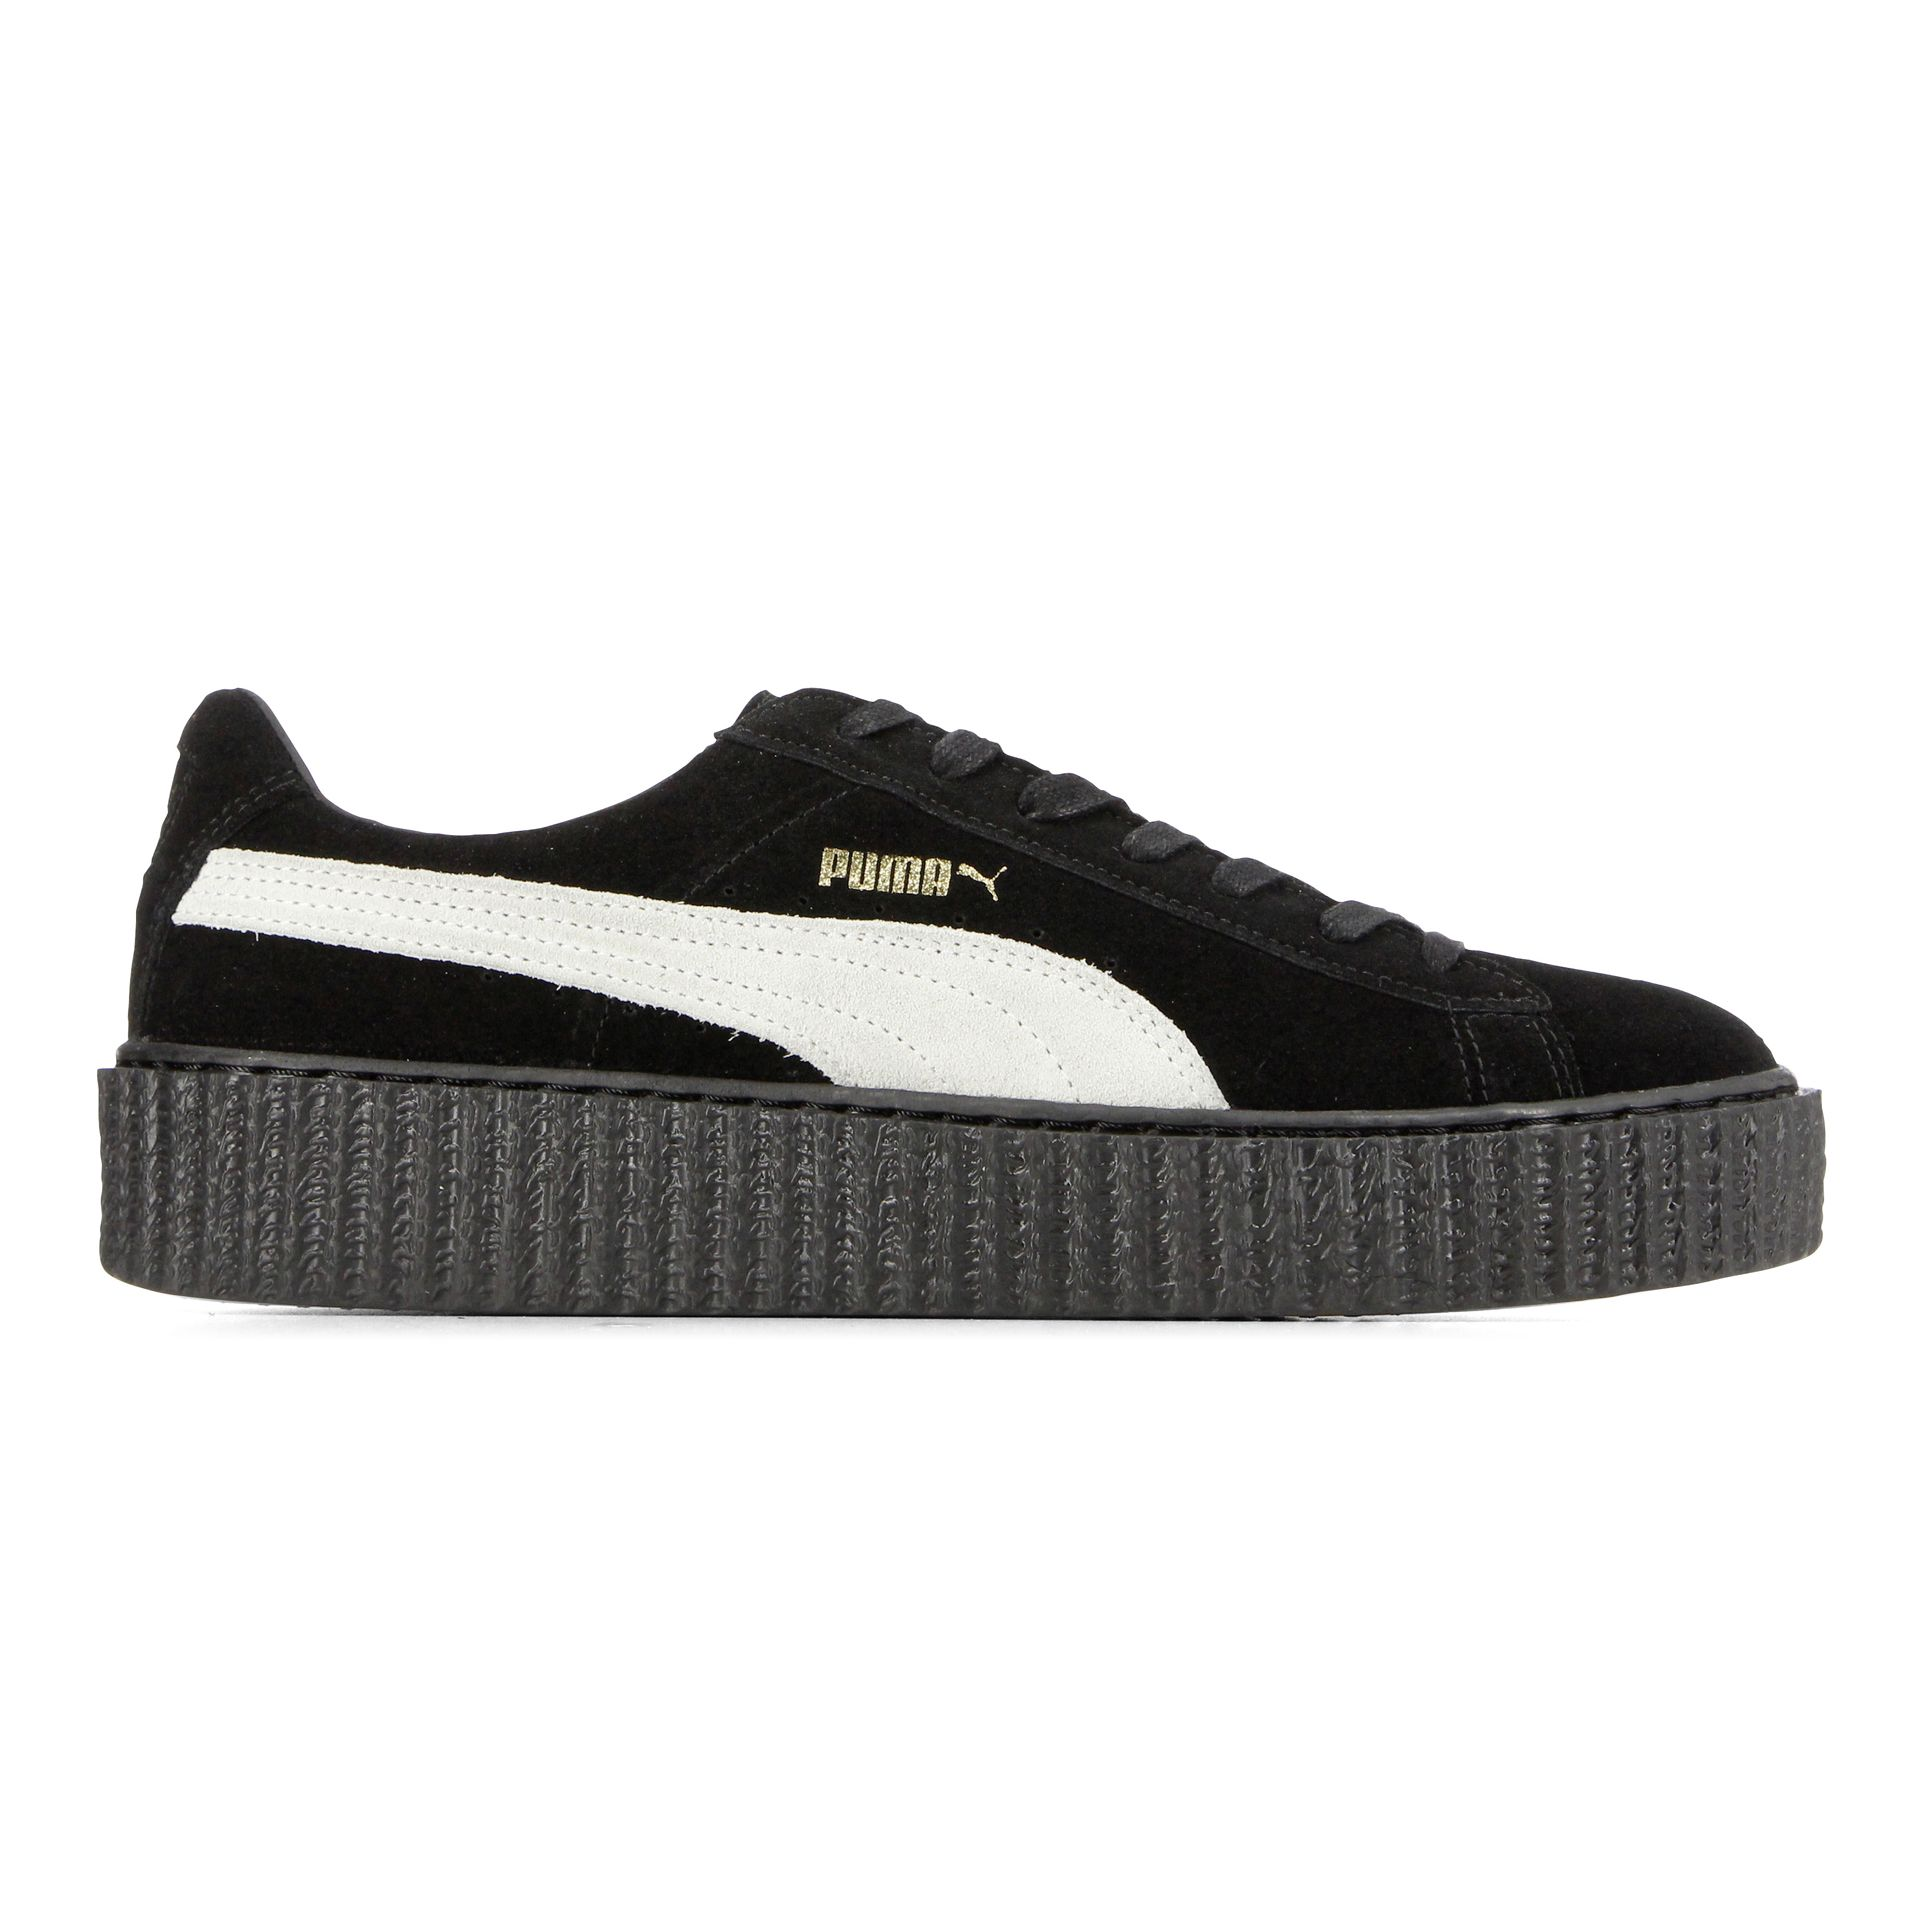 Mode Suede CreepersSneakers Pinterest Chaussure Et Puma kXZuTiPO